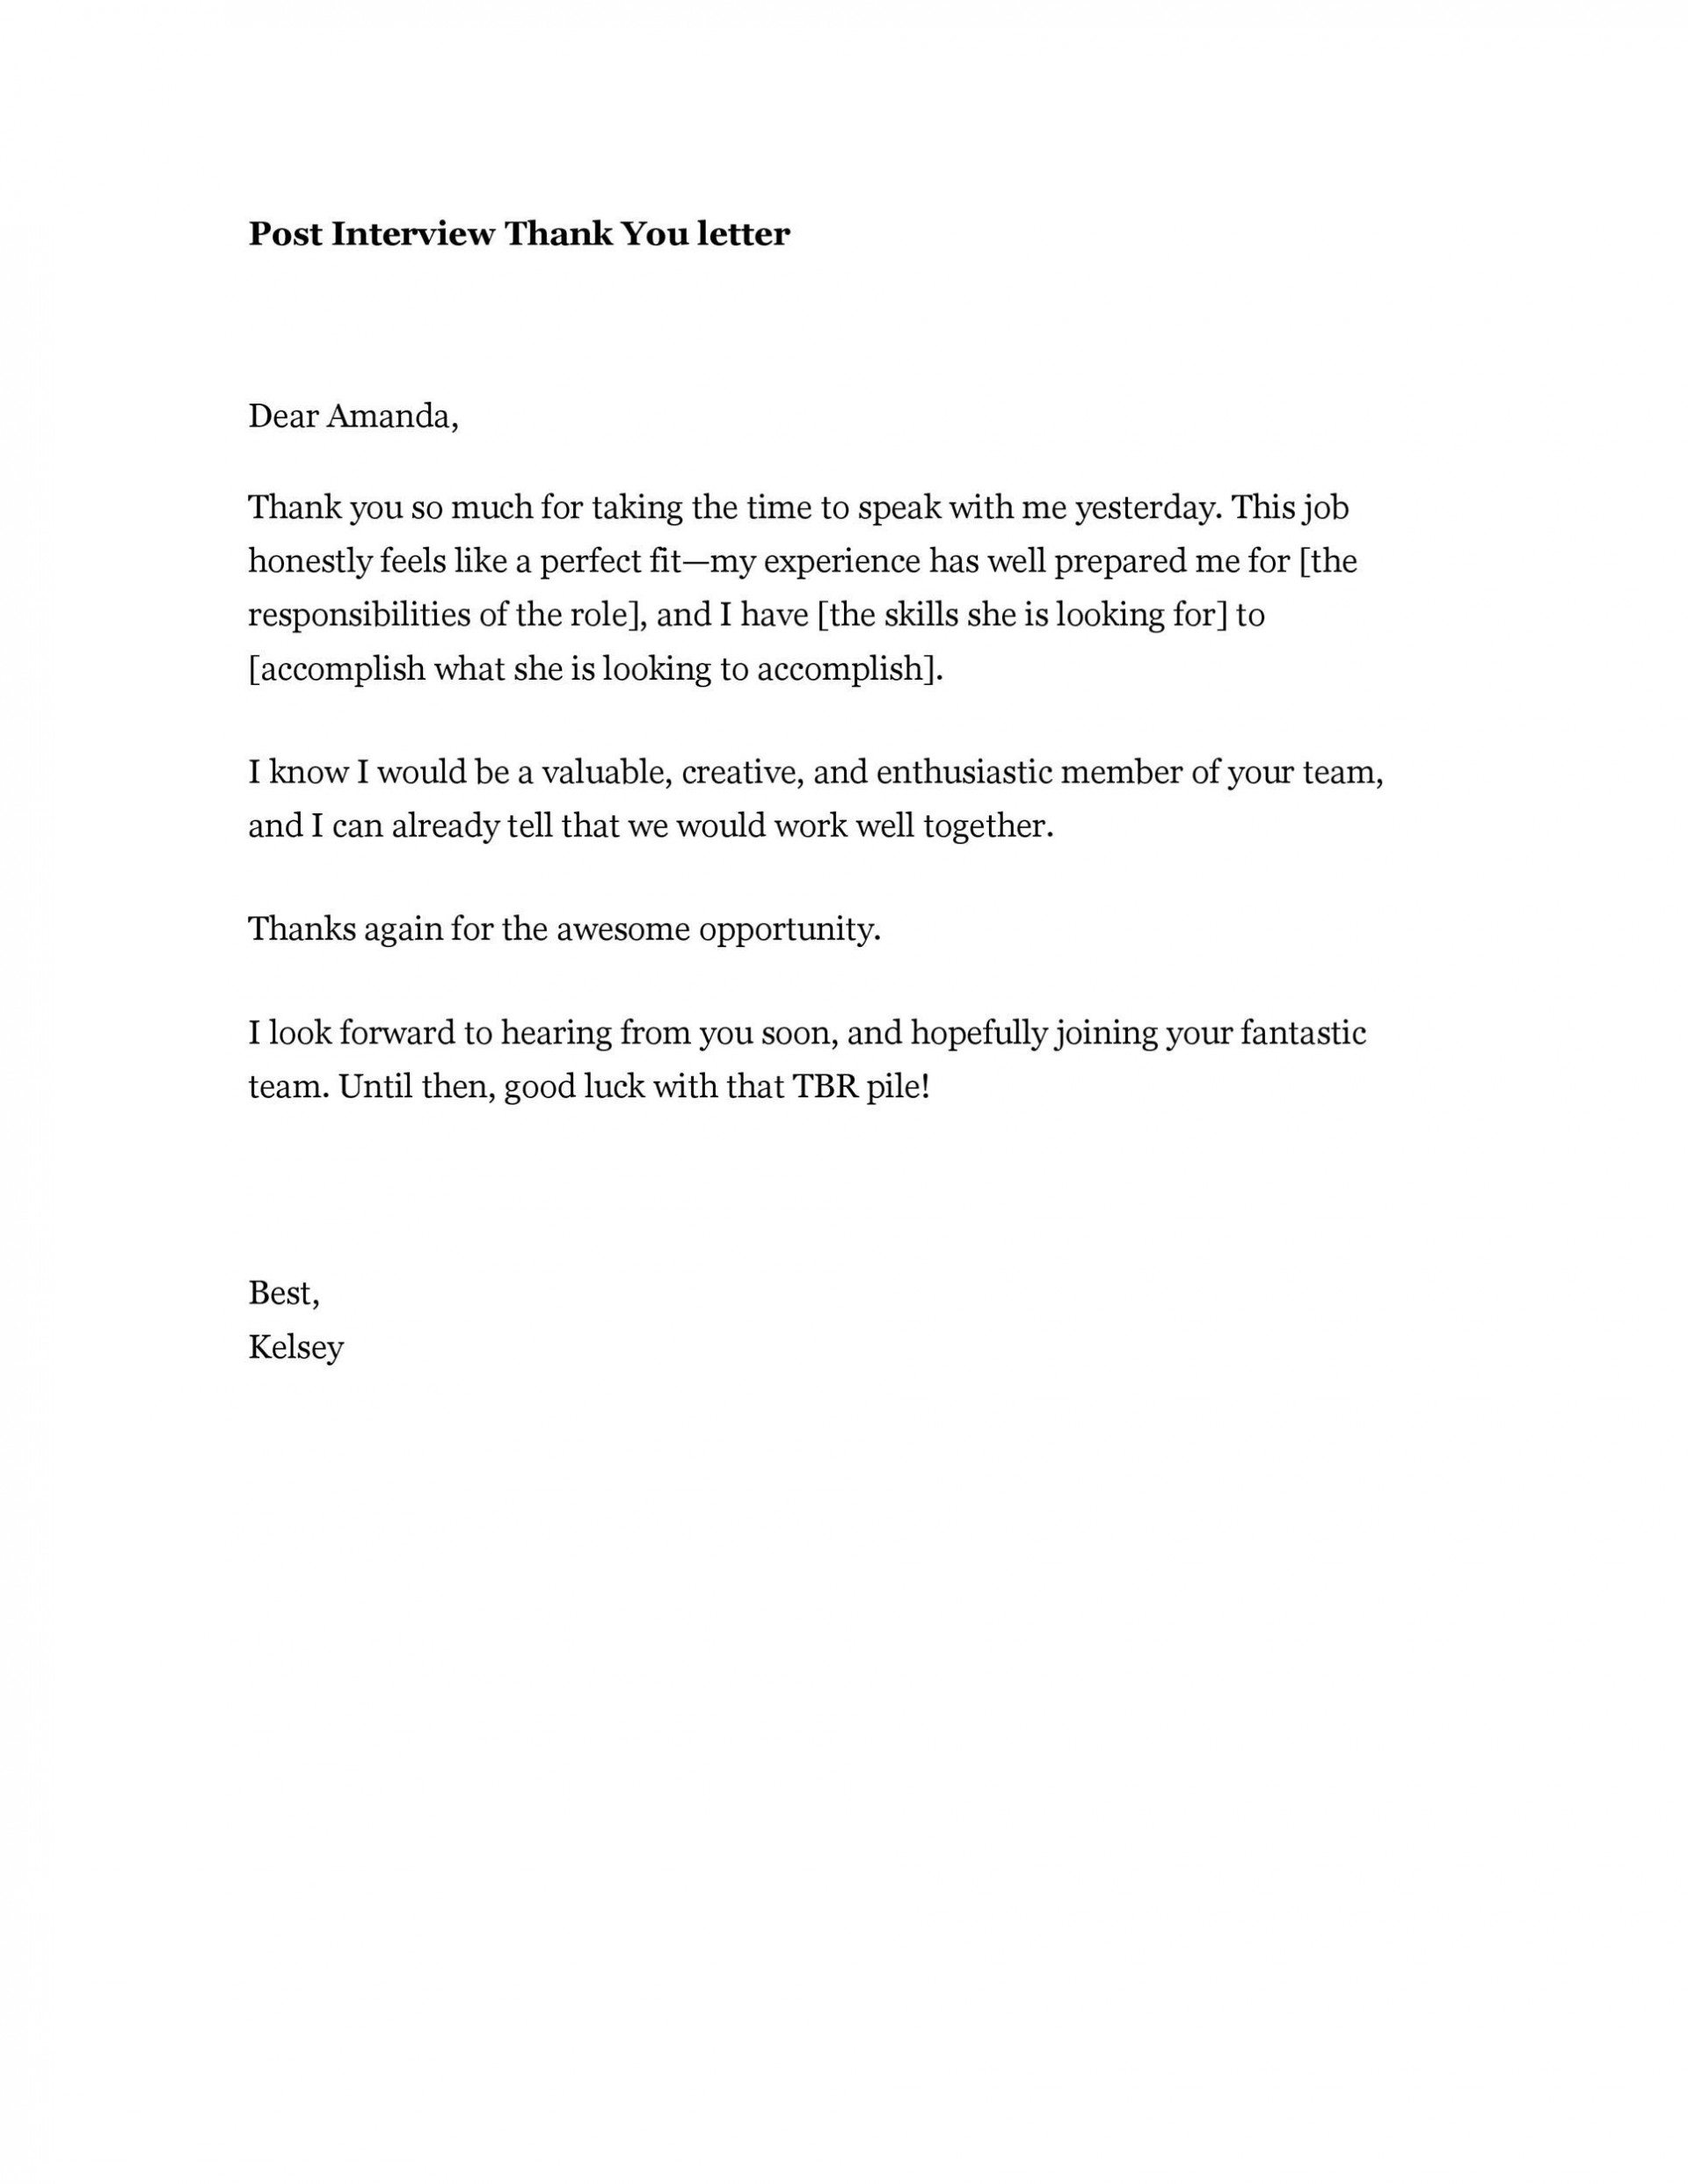 007 Archaicawful Thank You Note Template Job Interview Highest Quality  Card Letter Sample After1920